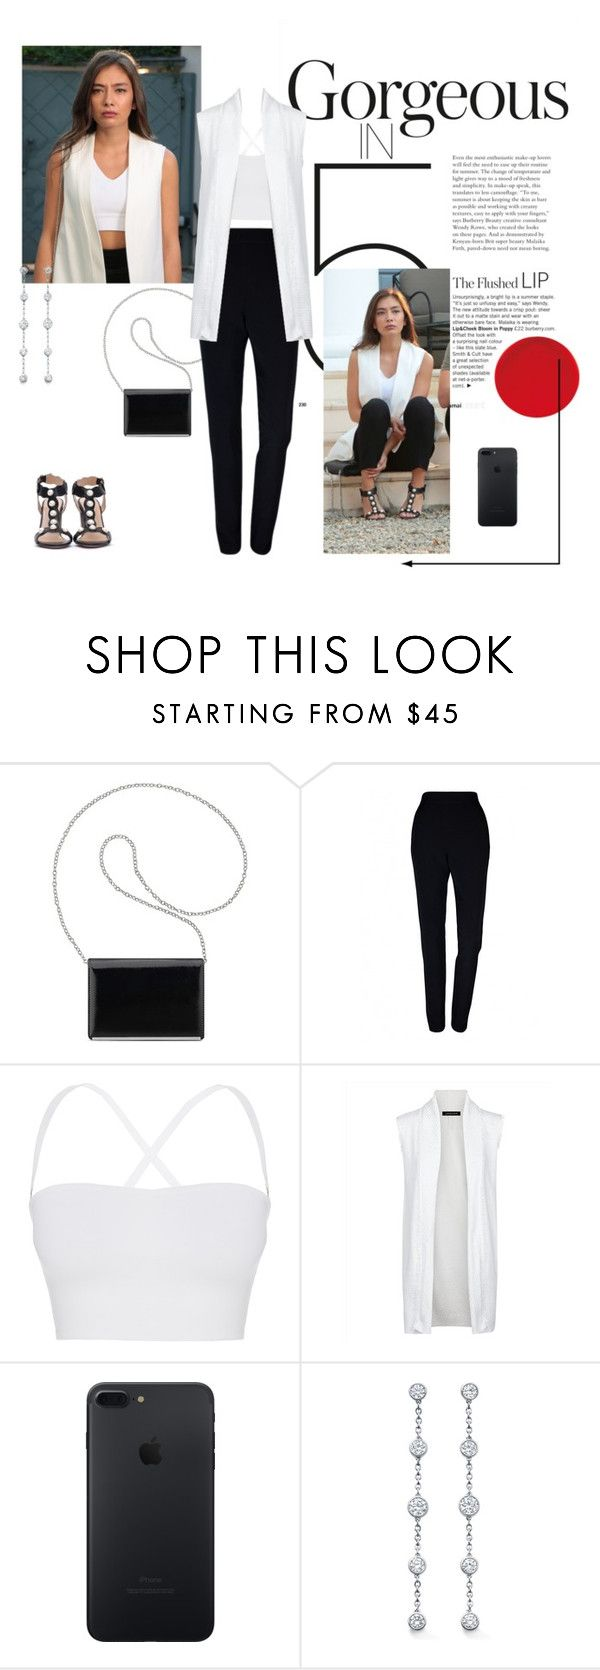 """Kara Sevda Nihan Bolun 37"" by chaneladdicted ❤ liked on Polyvore featuring Nine West, Plakinger, Theory, Jaeger and karasevda"